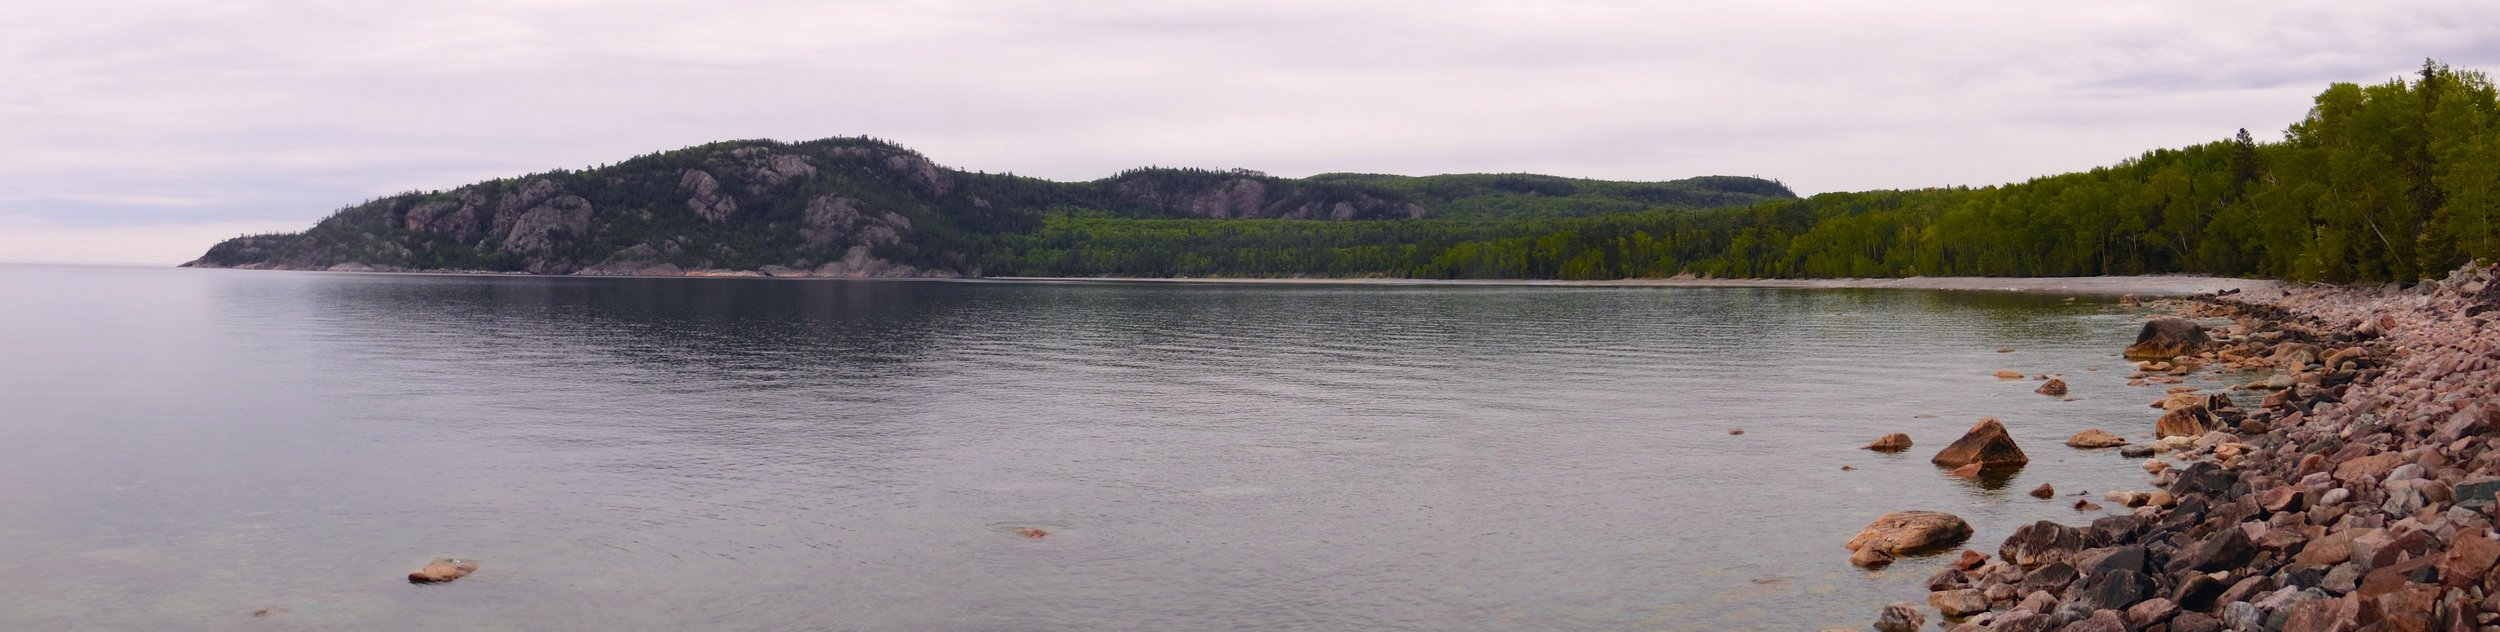 Peaceful and tranquil Alona Bay in Ontario panorama